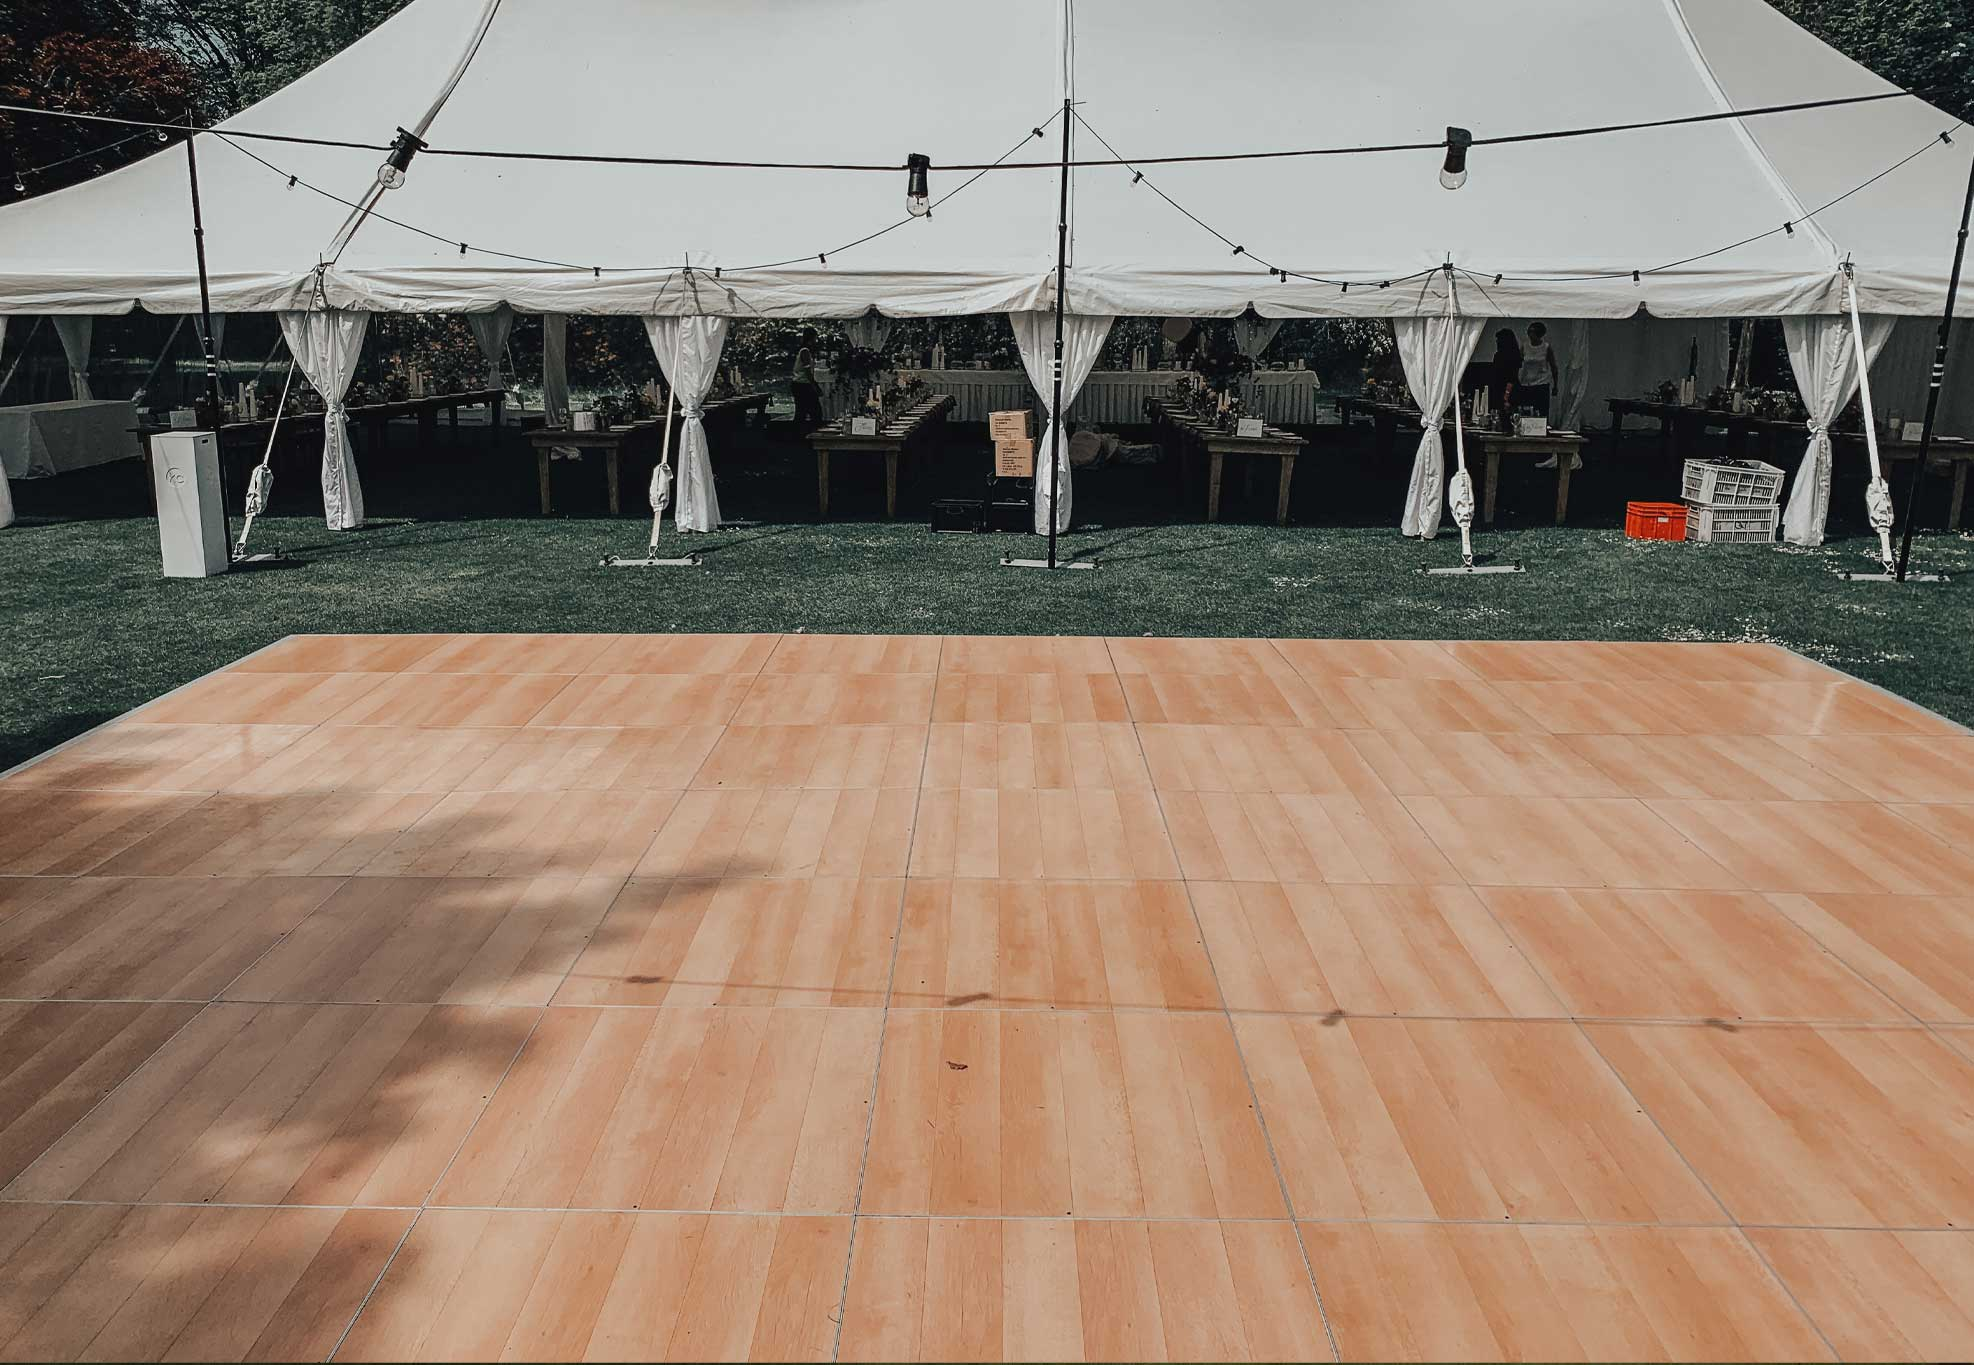 silk-estate-marquee-weddings-and-events-styling-and-hire-flooring-dancefloor